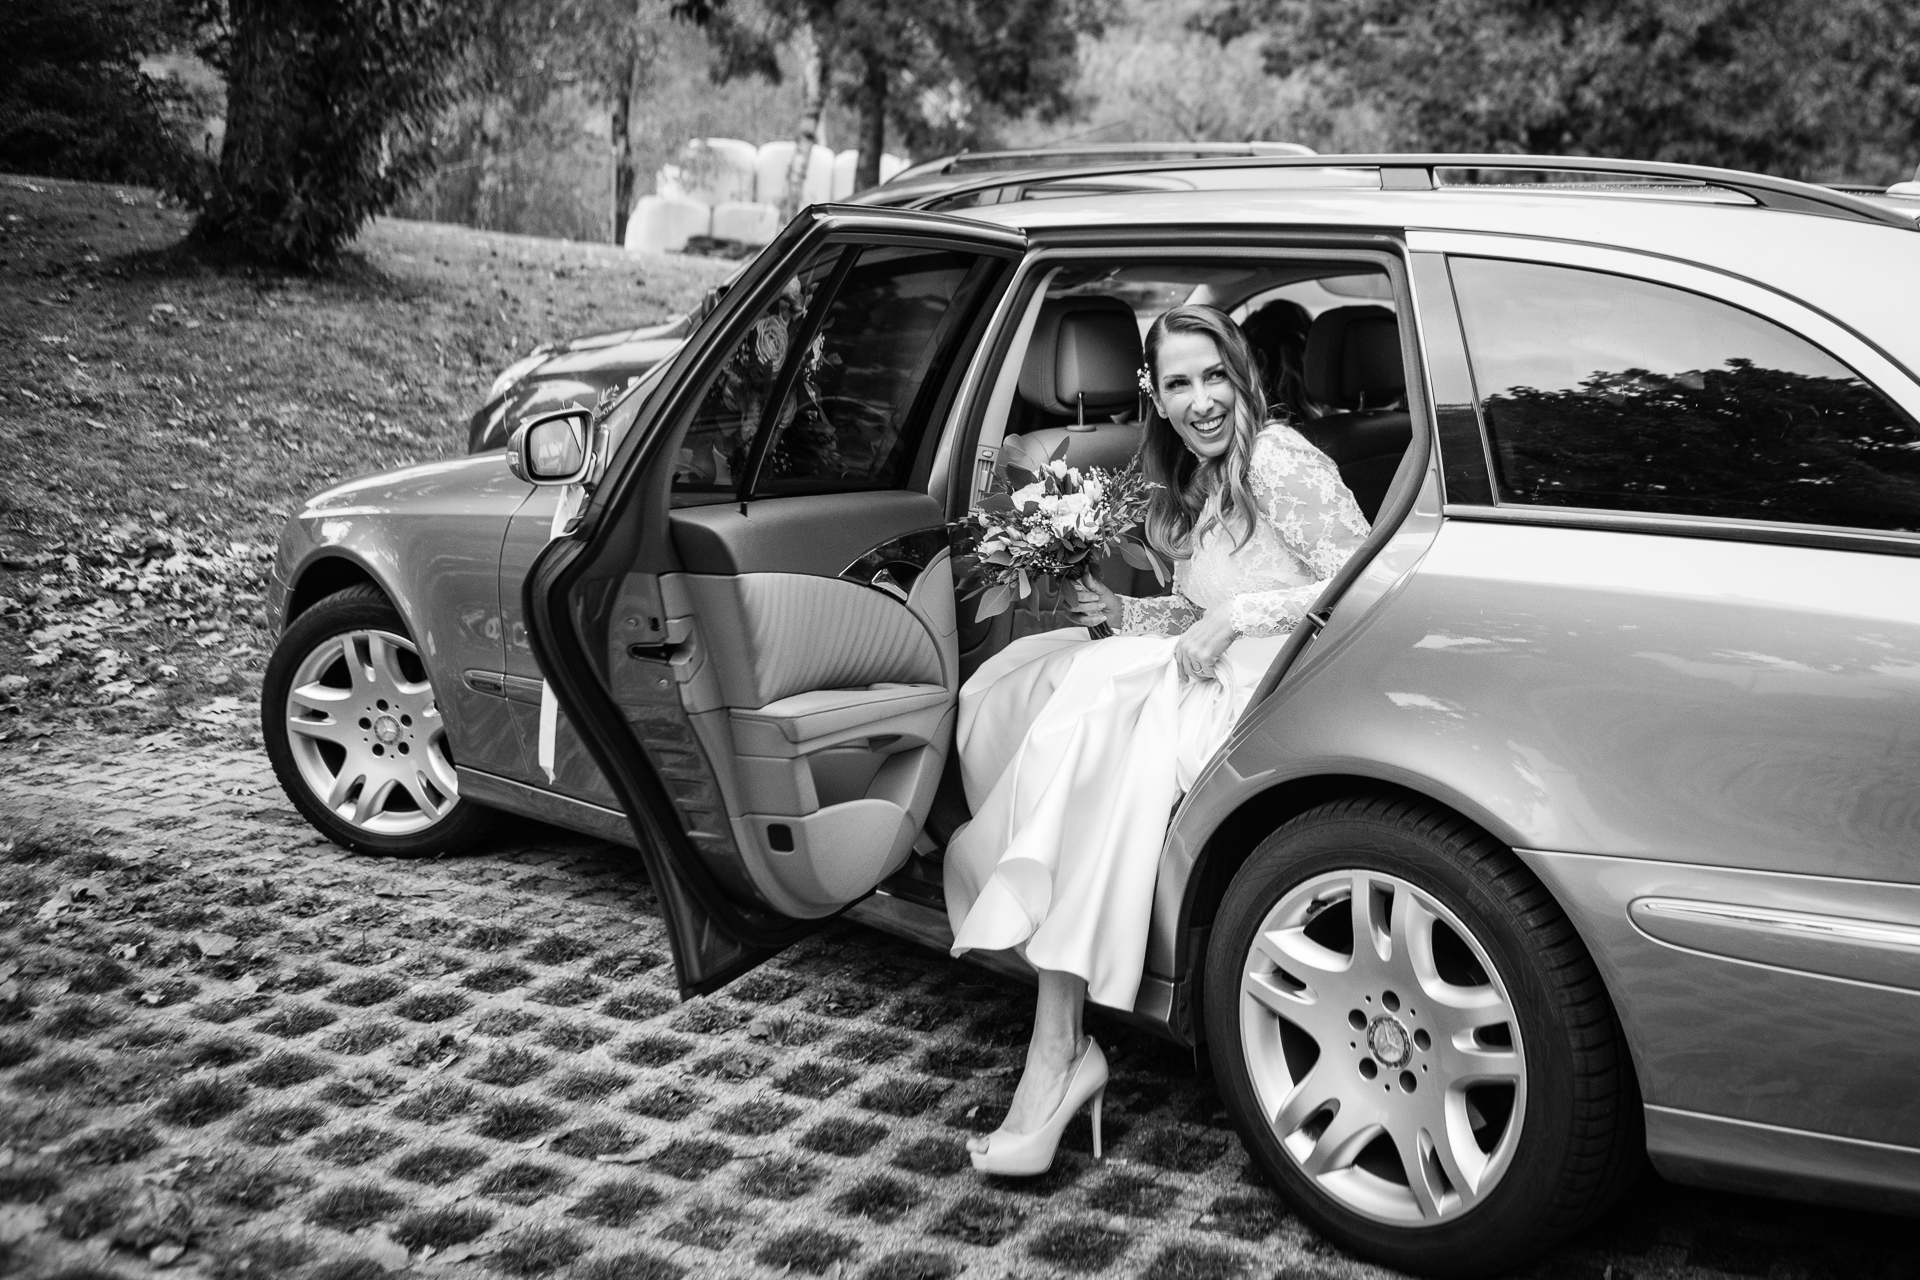 Wedding Image of a Switzerland Bride | The bride prepares to step out of the car